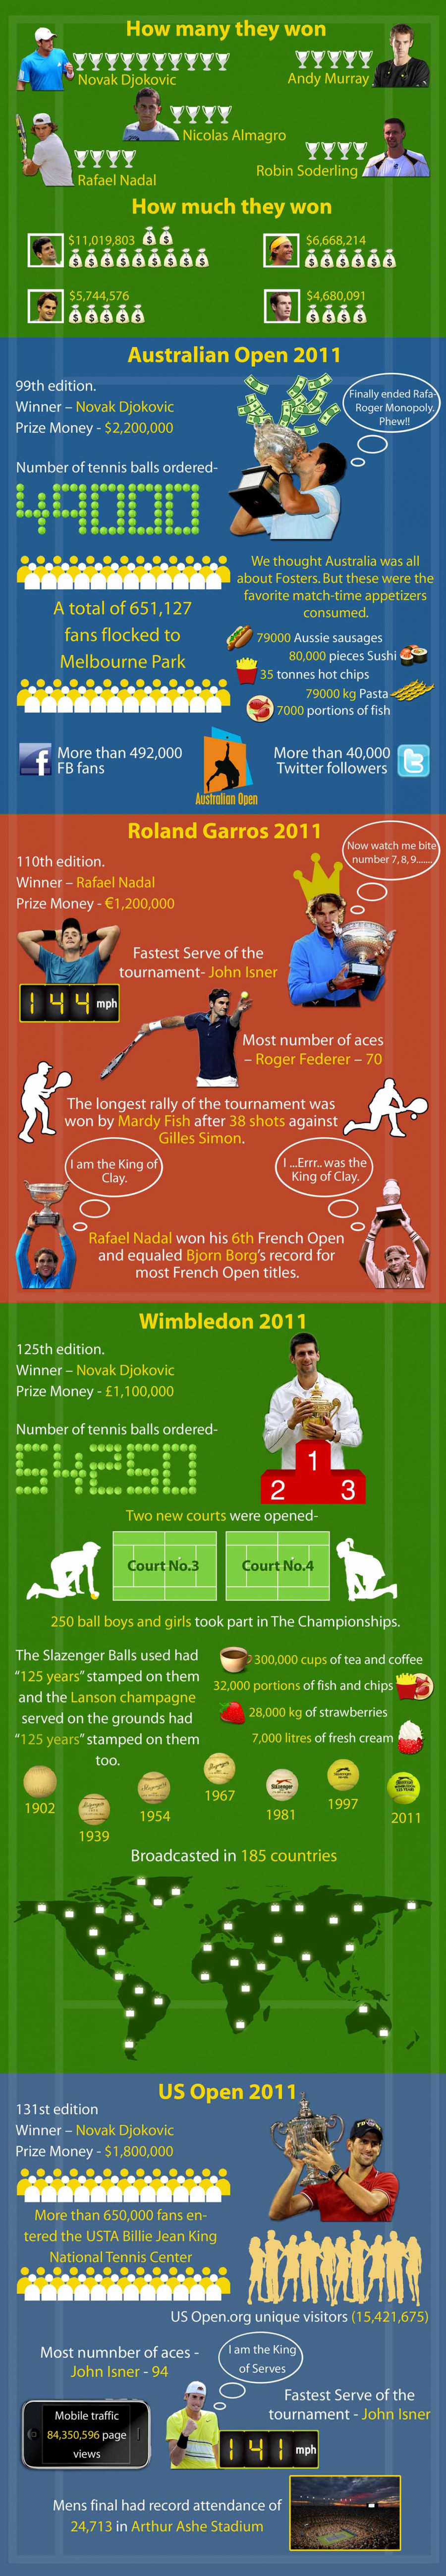 31333? w=900 - Top 6 Surprises of the Australian Open Over the Years